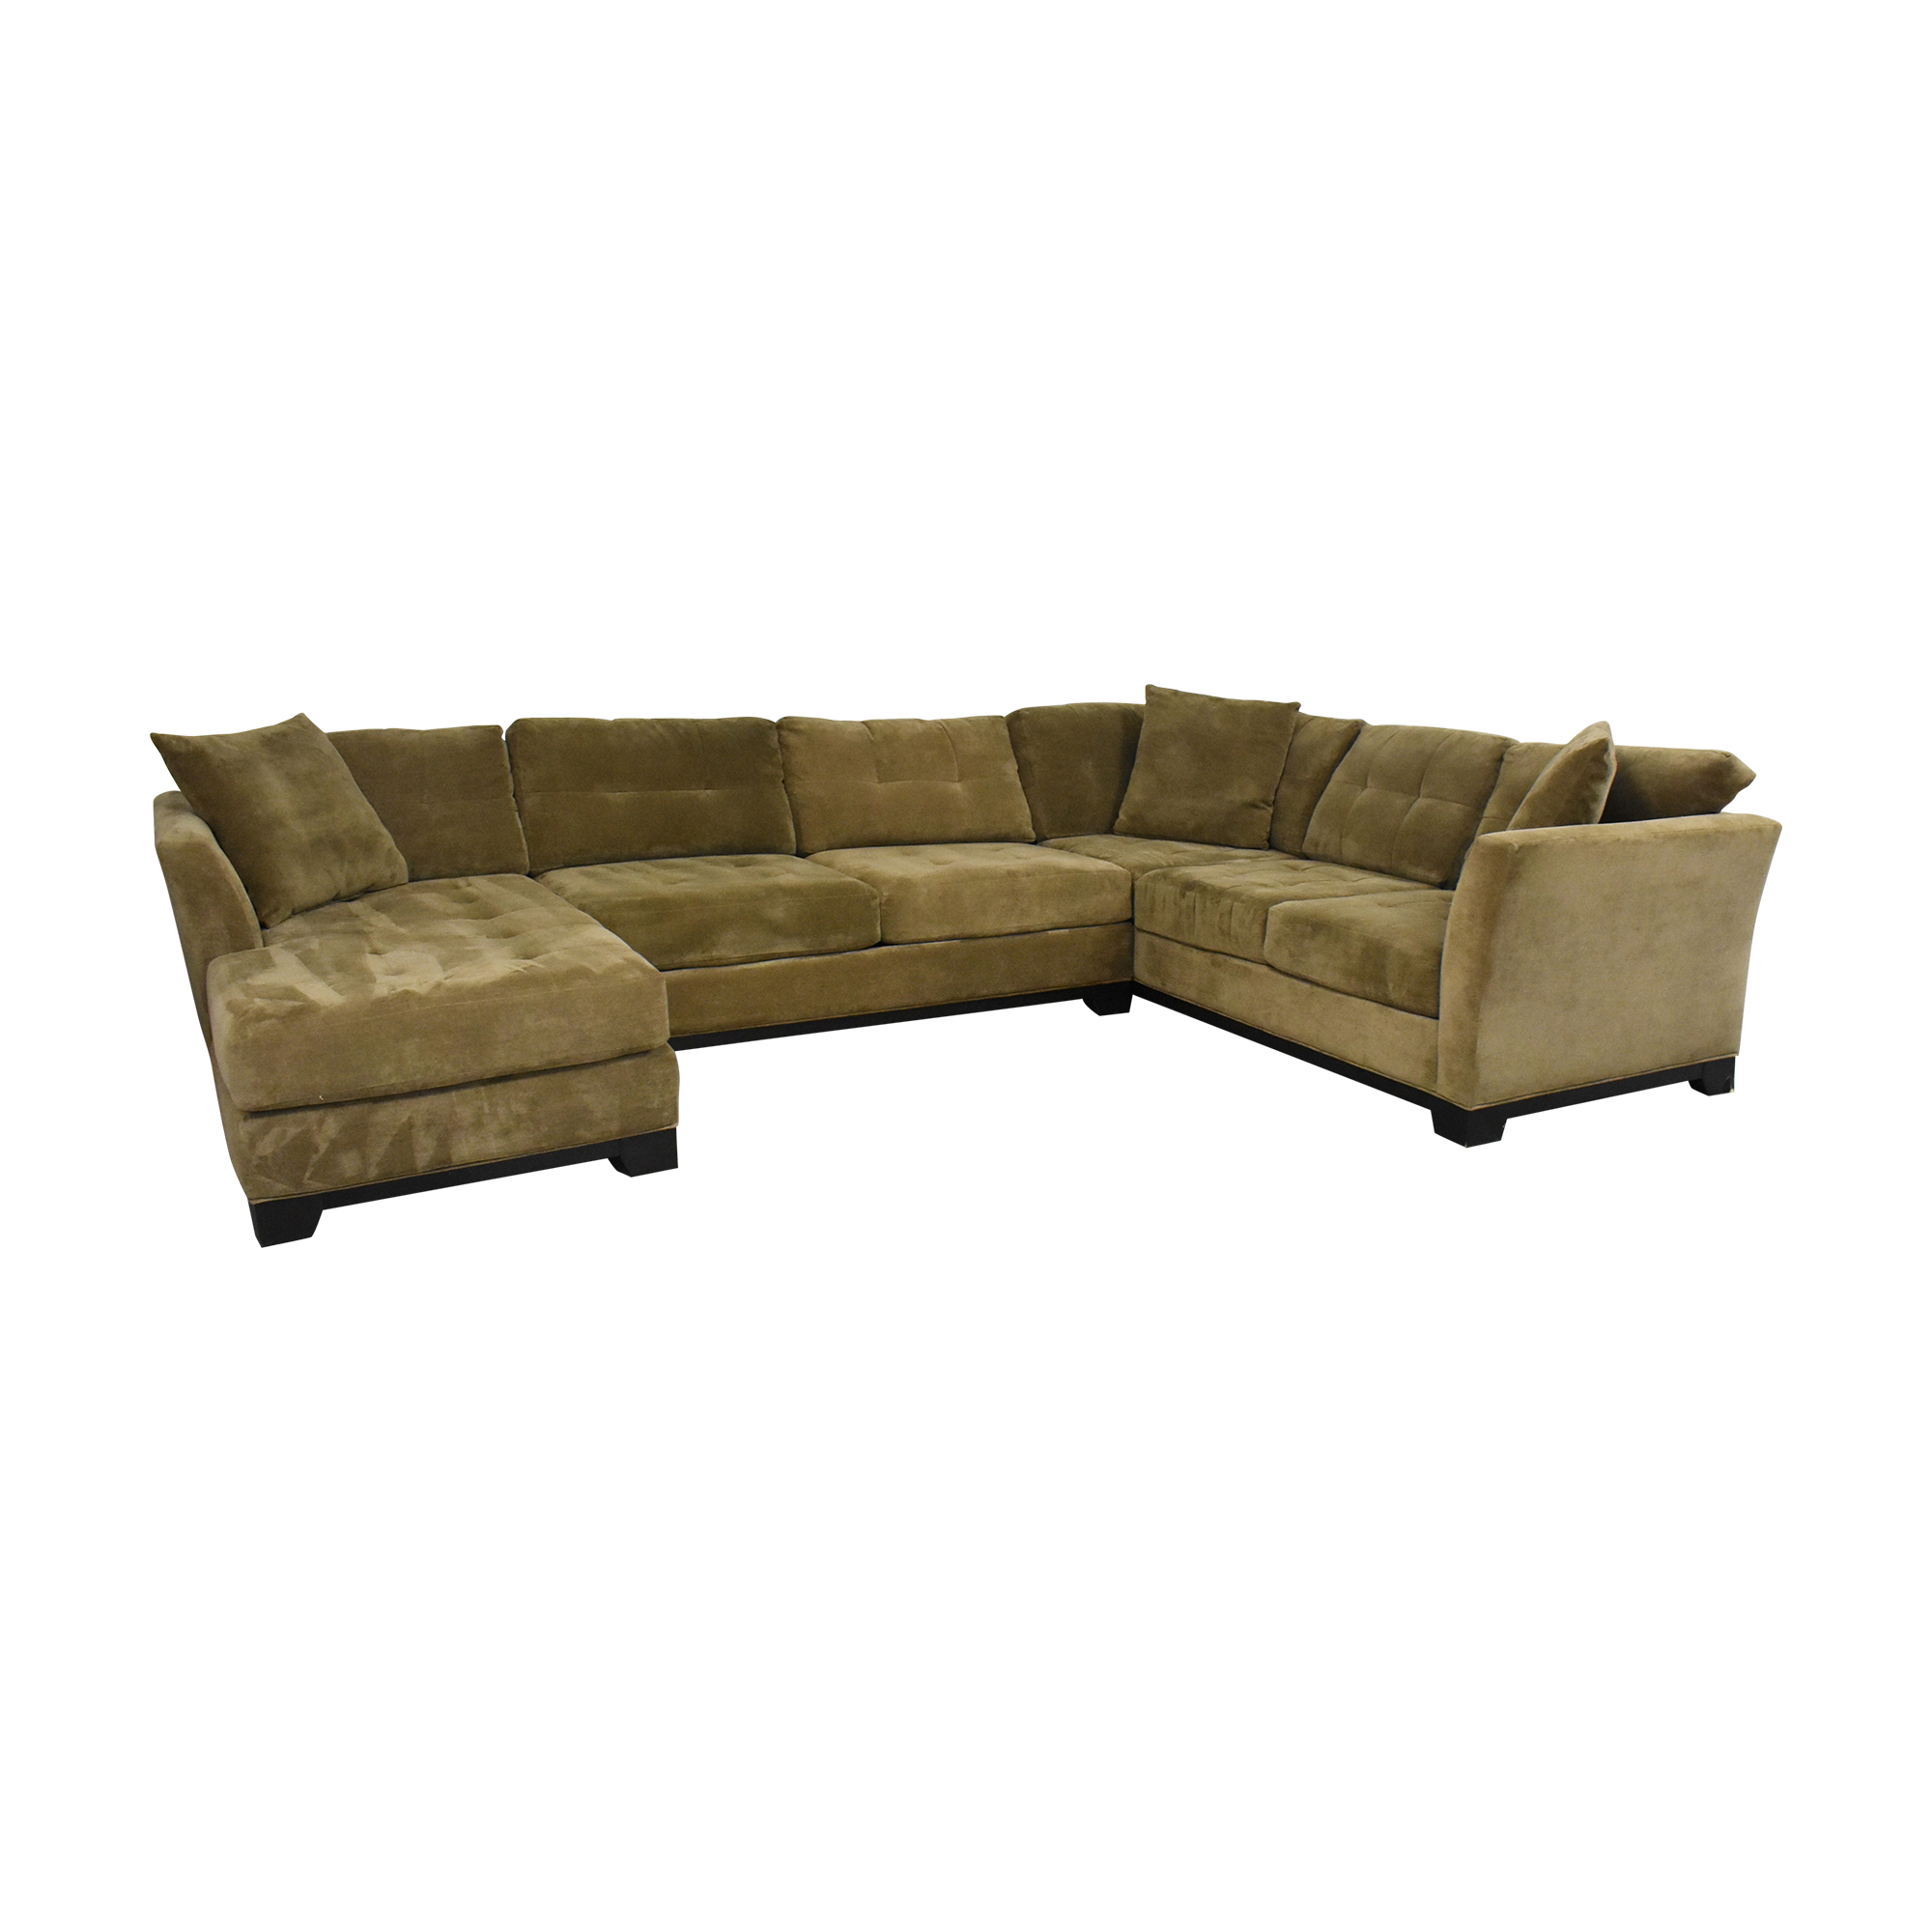 Macy's Macy's Elliot Three Piece Sectional Sofa tan